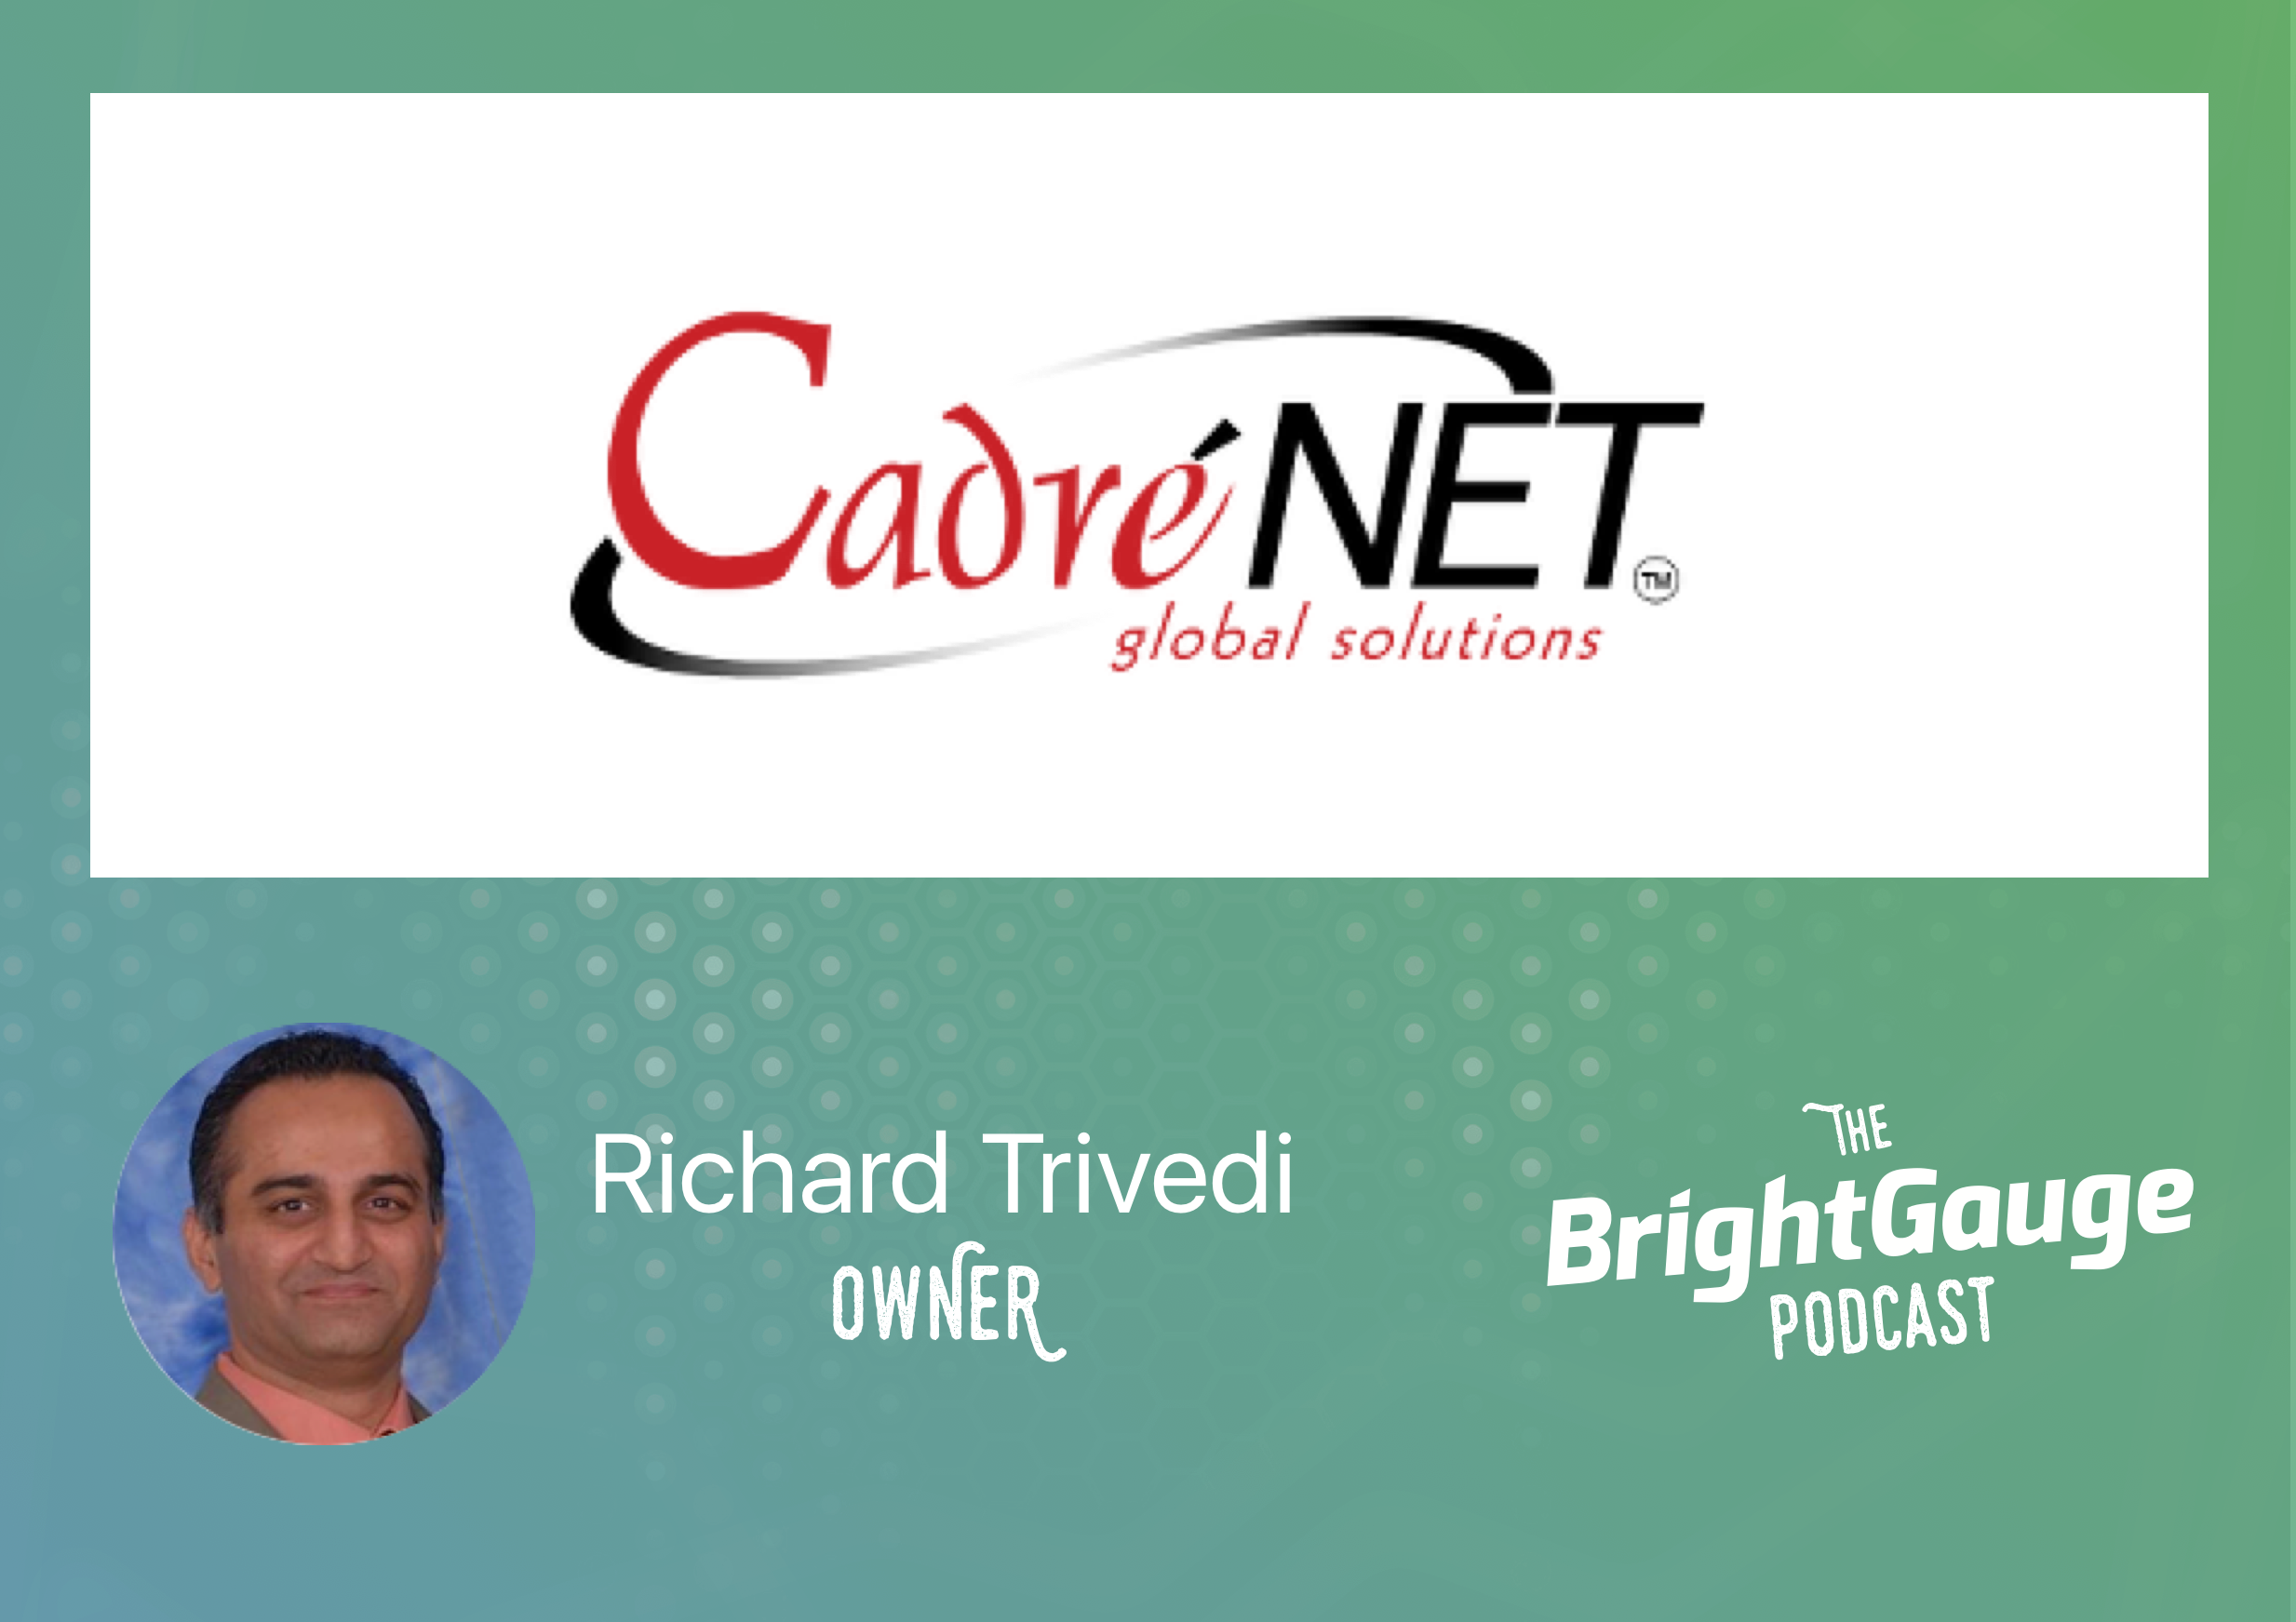 [Podcast] Episode 18 with Richard Trivedi of CadreNet